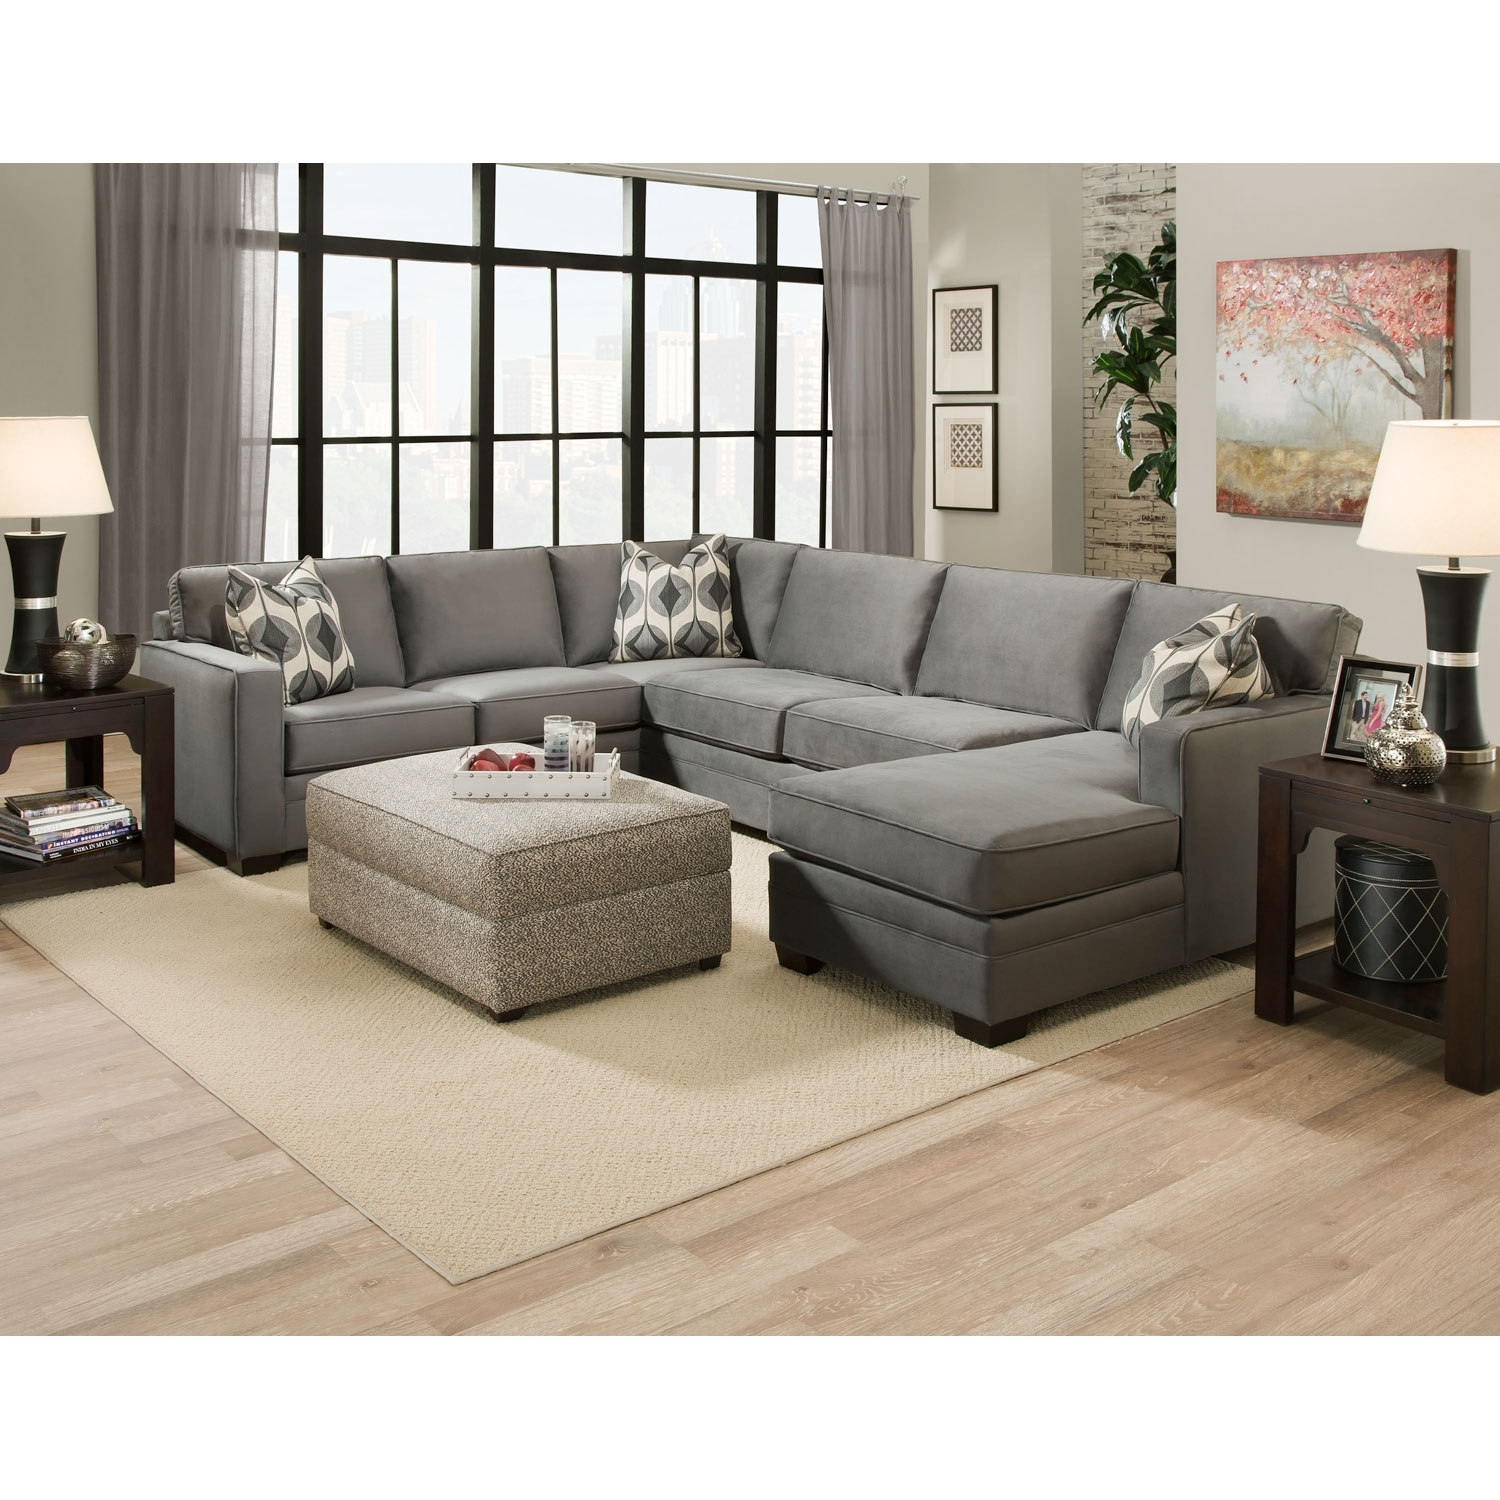 Gray Extra Large U Shaped Sectional Sofa With Chaise And Accent Within Extra Large U Shaped Sectionals (View 5 of 10)